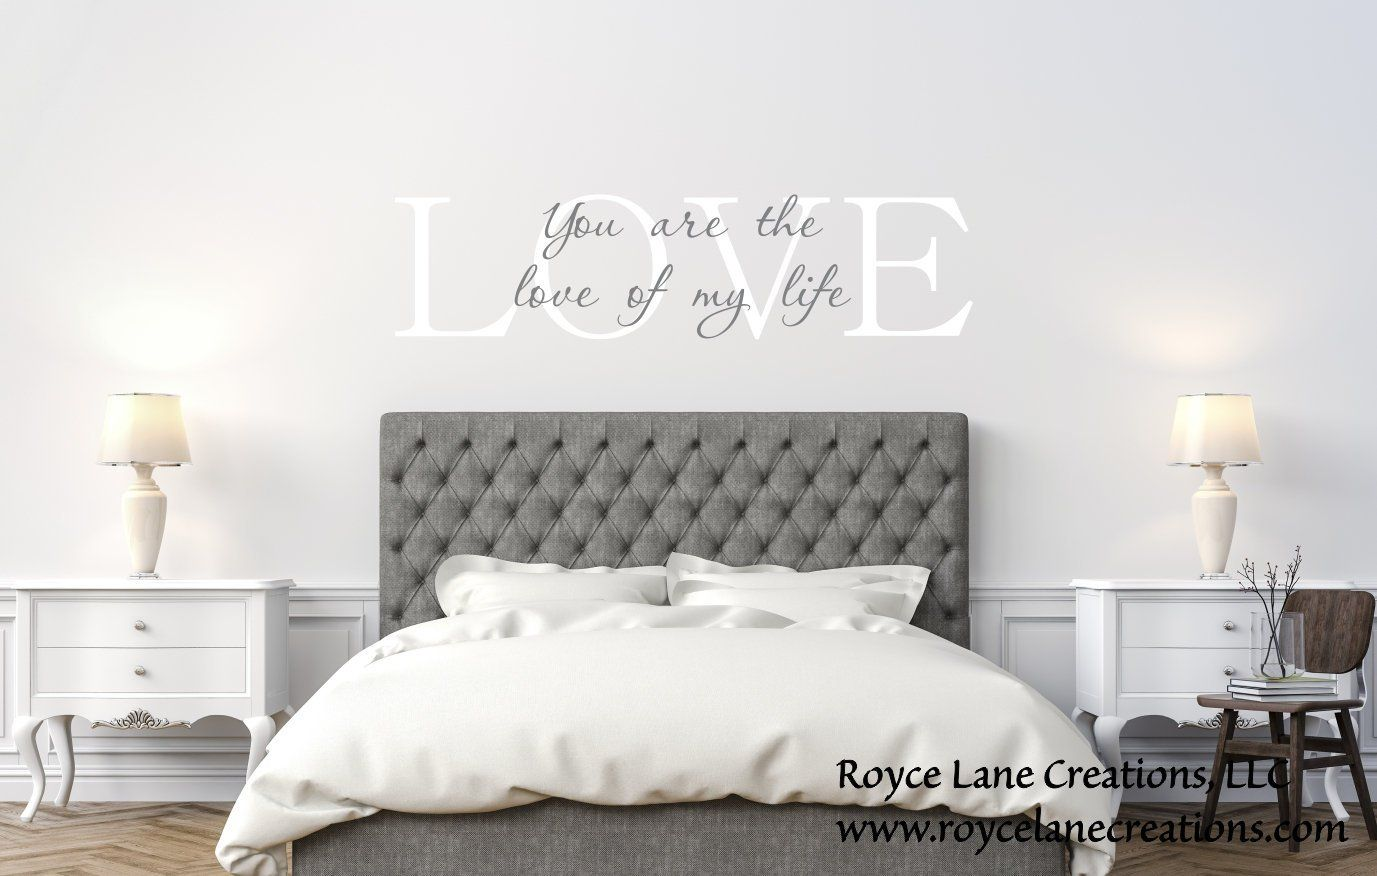 Love Quote Decal / Love of My Life Decal / Bedroom Quotes / Vinyl